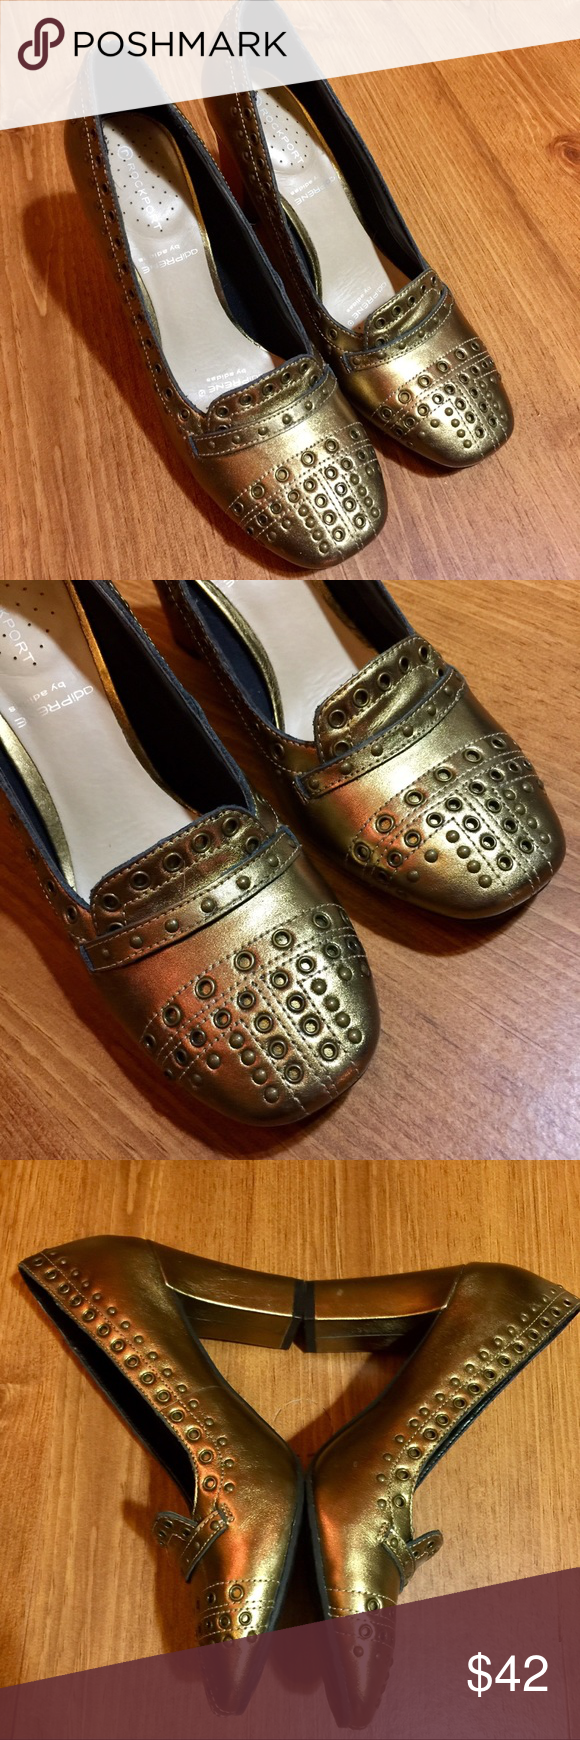 Rockport Studded Pump in Copper. New in the box and never worn. Size 6